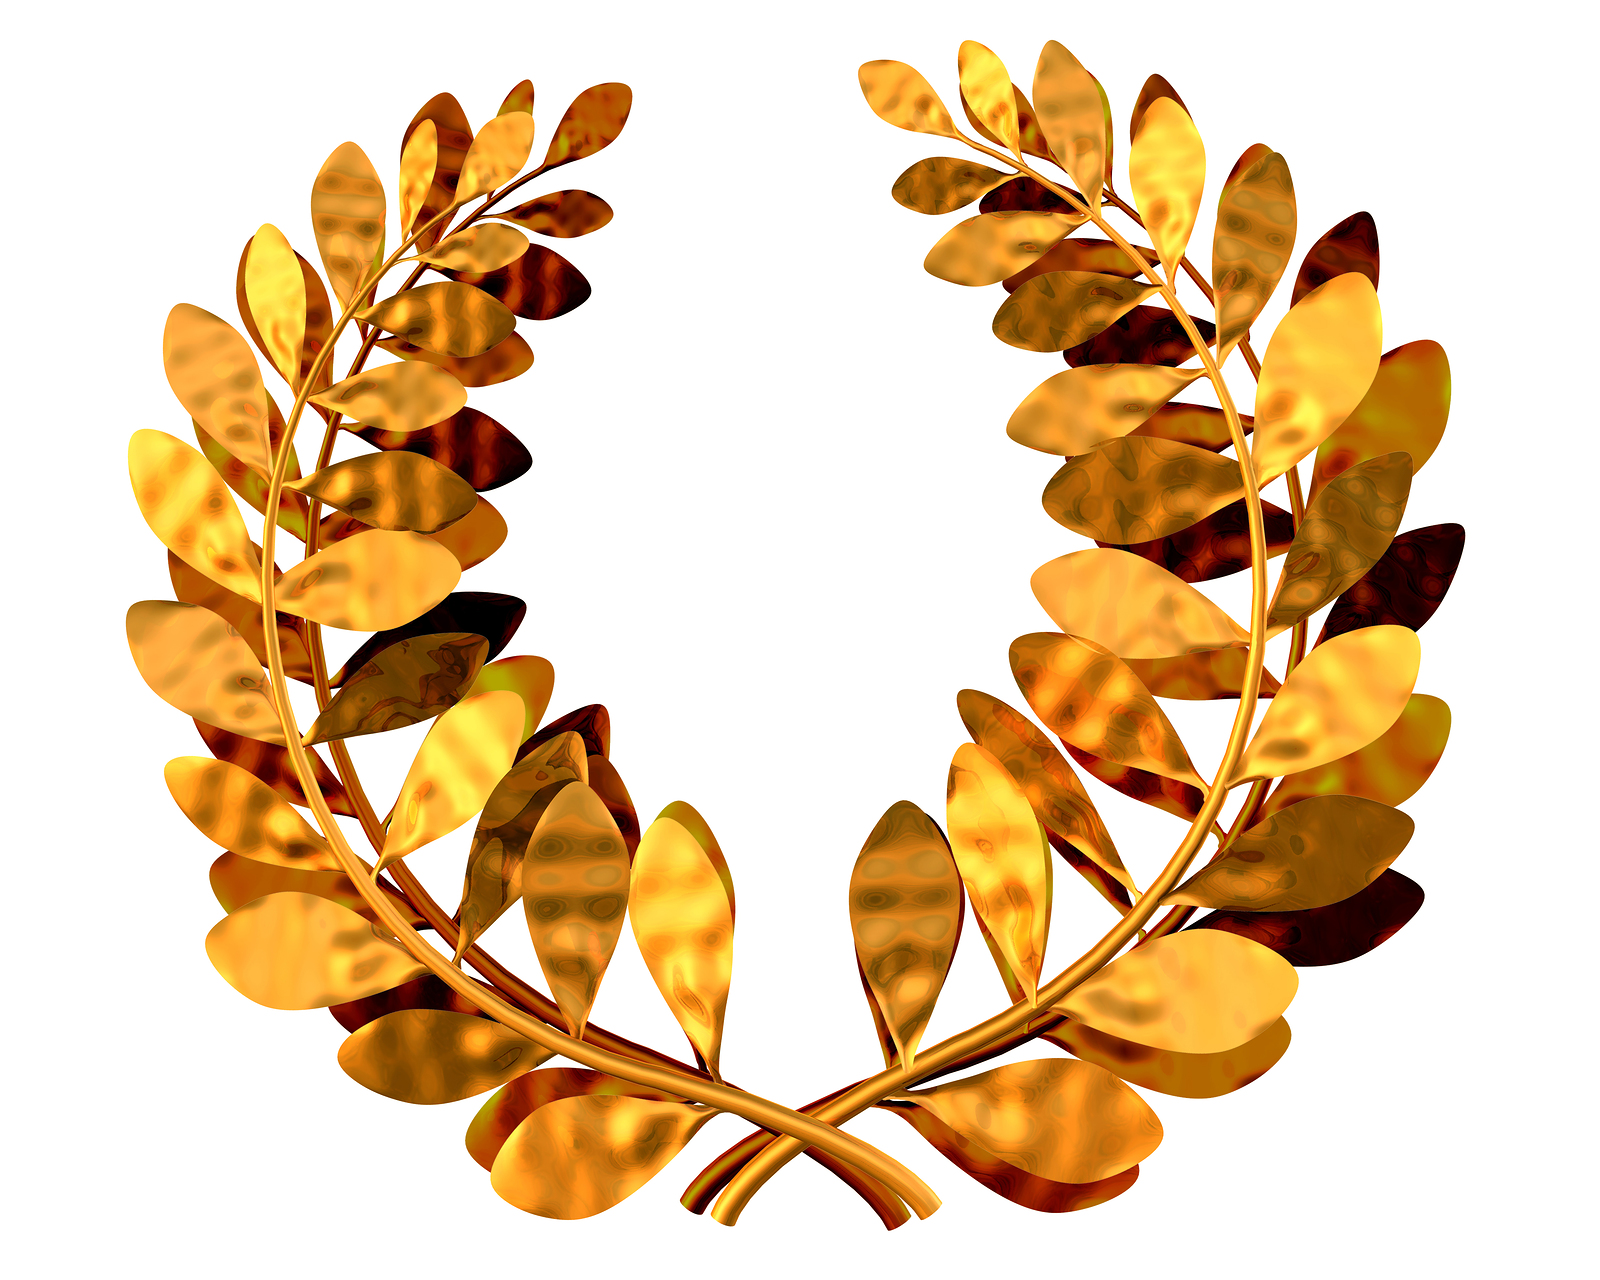 bigstockphoto_Golden_Laurel_Wreath_3945856